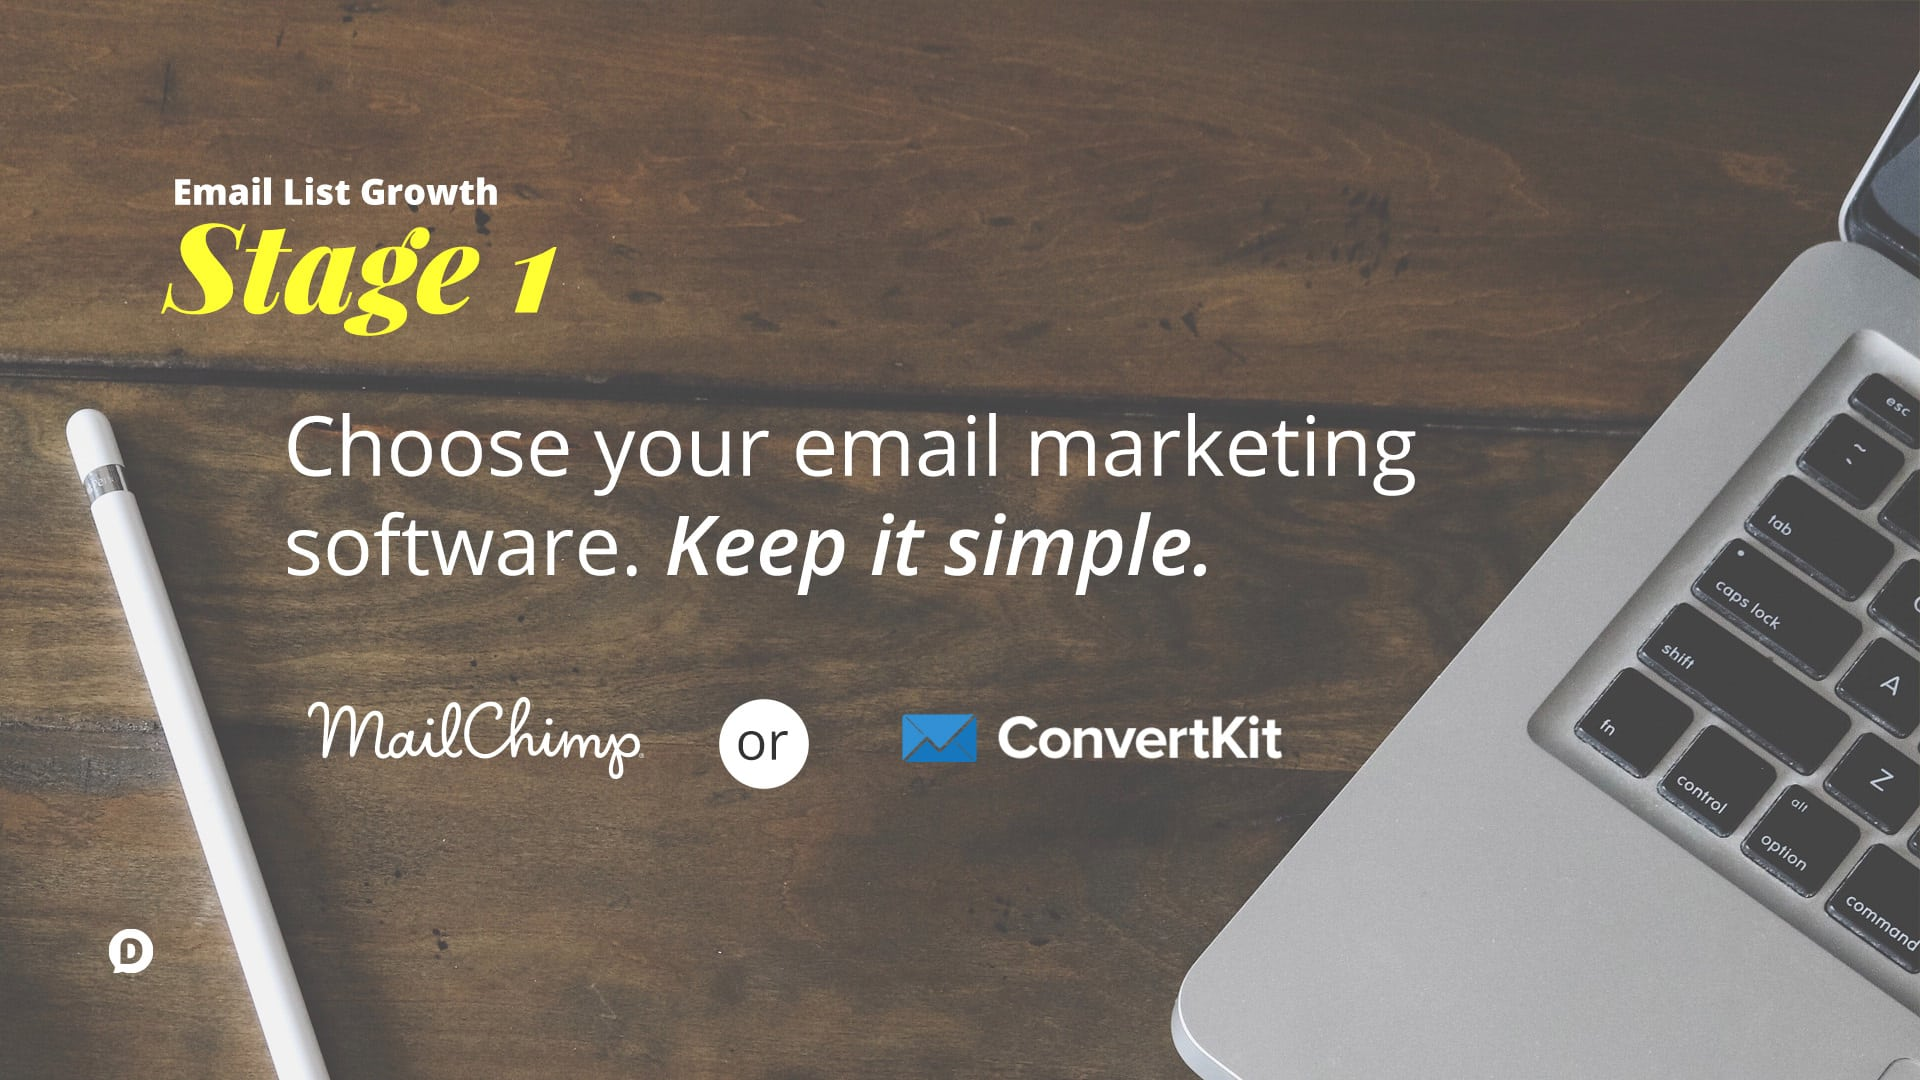 grow your email list stage 1